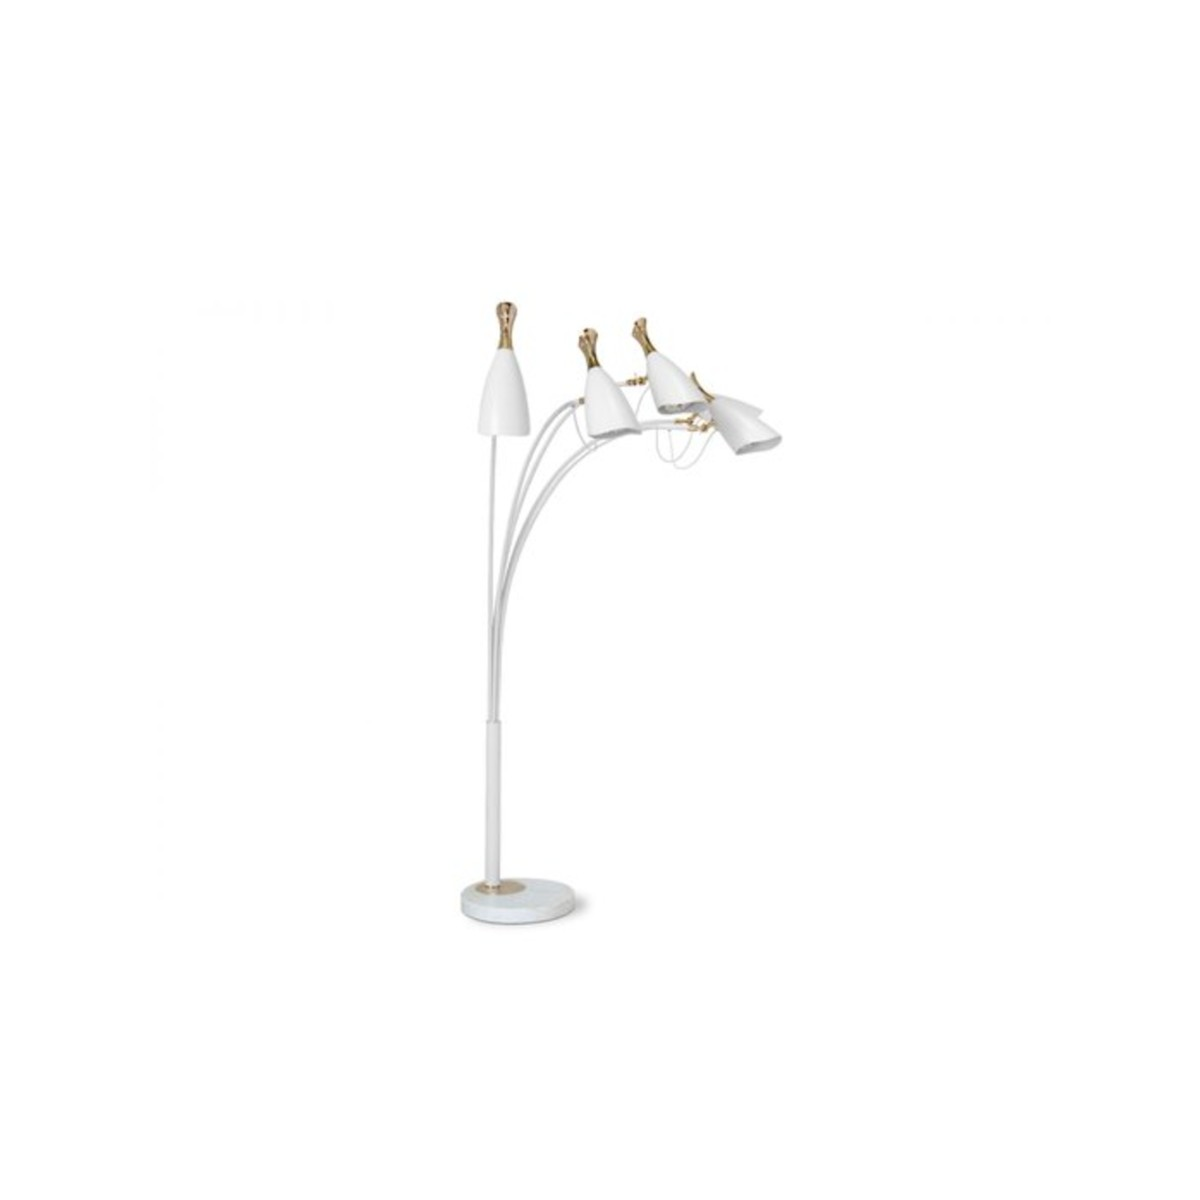 DUKE 5 FLOOR LAMP